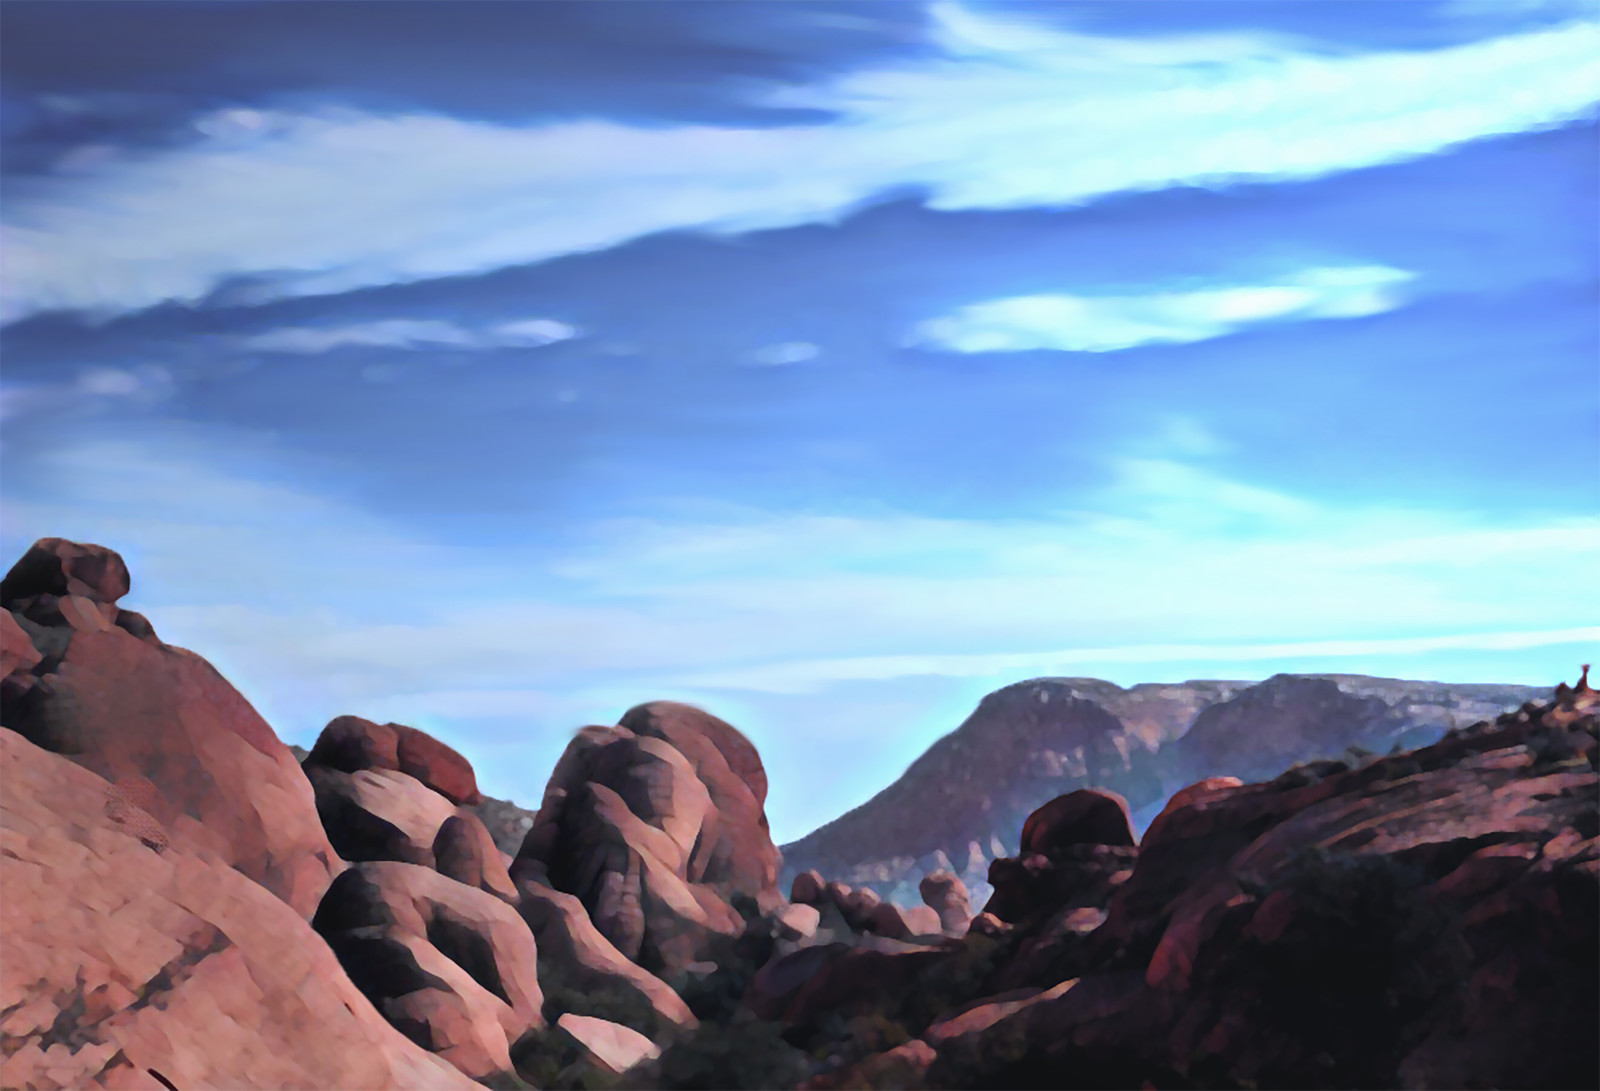 Landscape Study - Red Rock Canyon